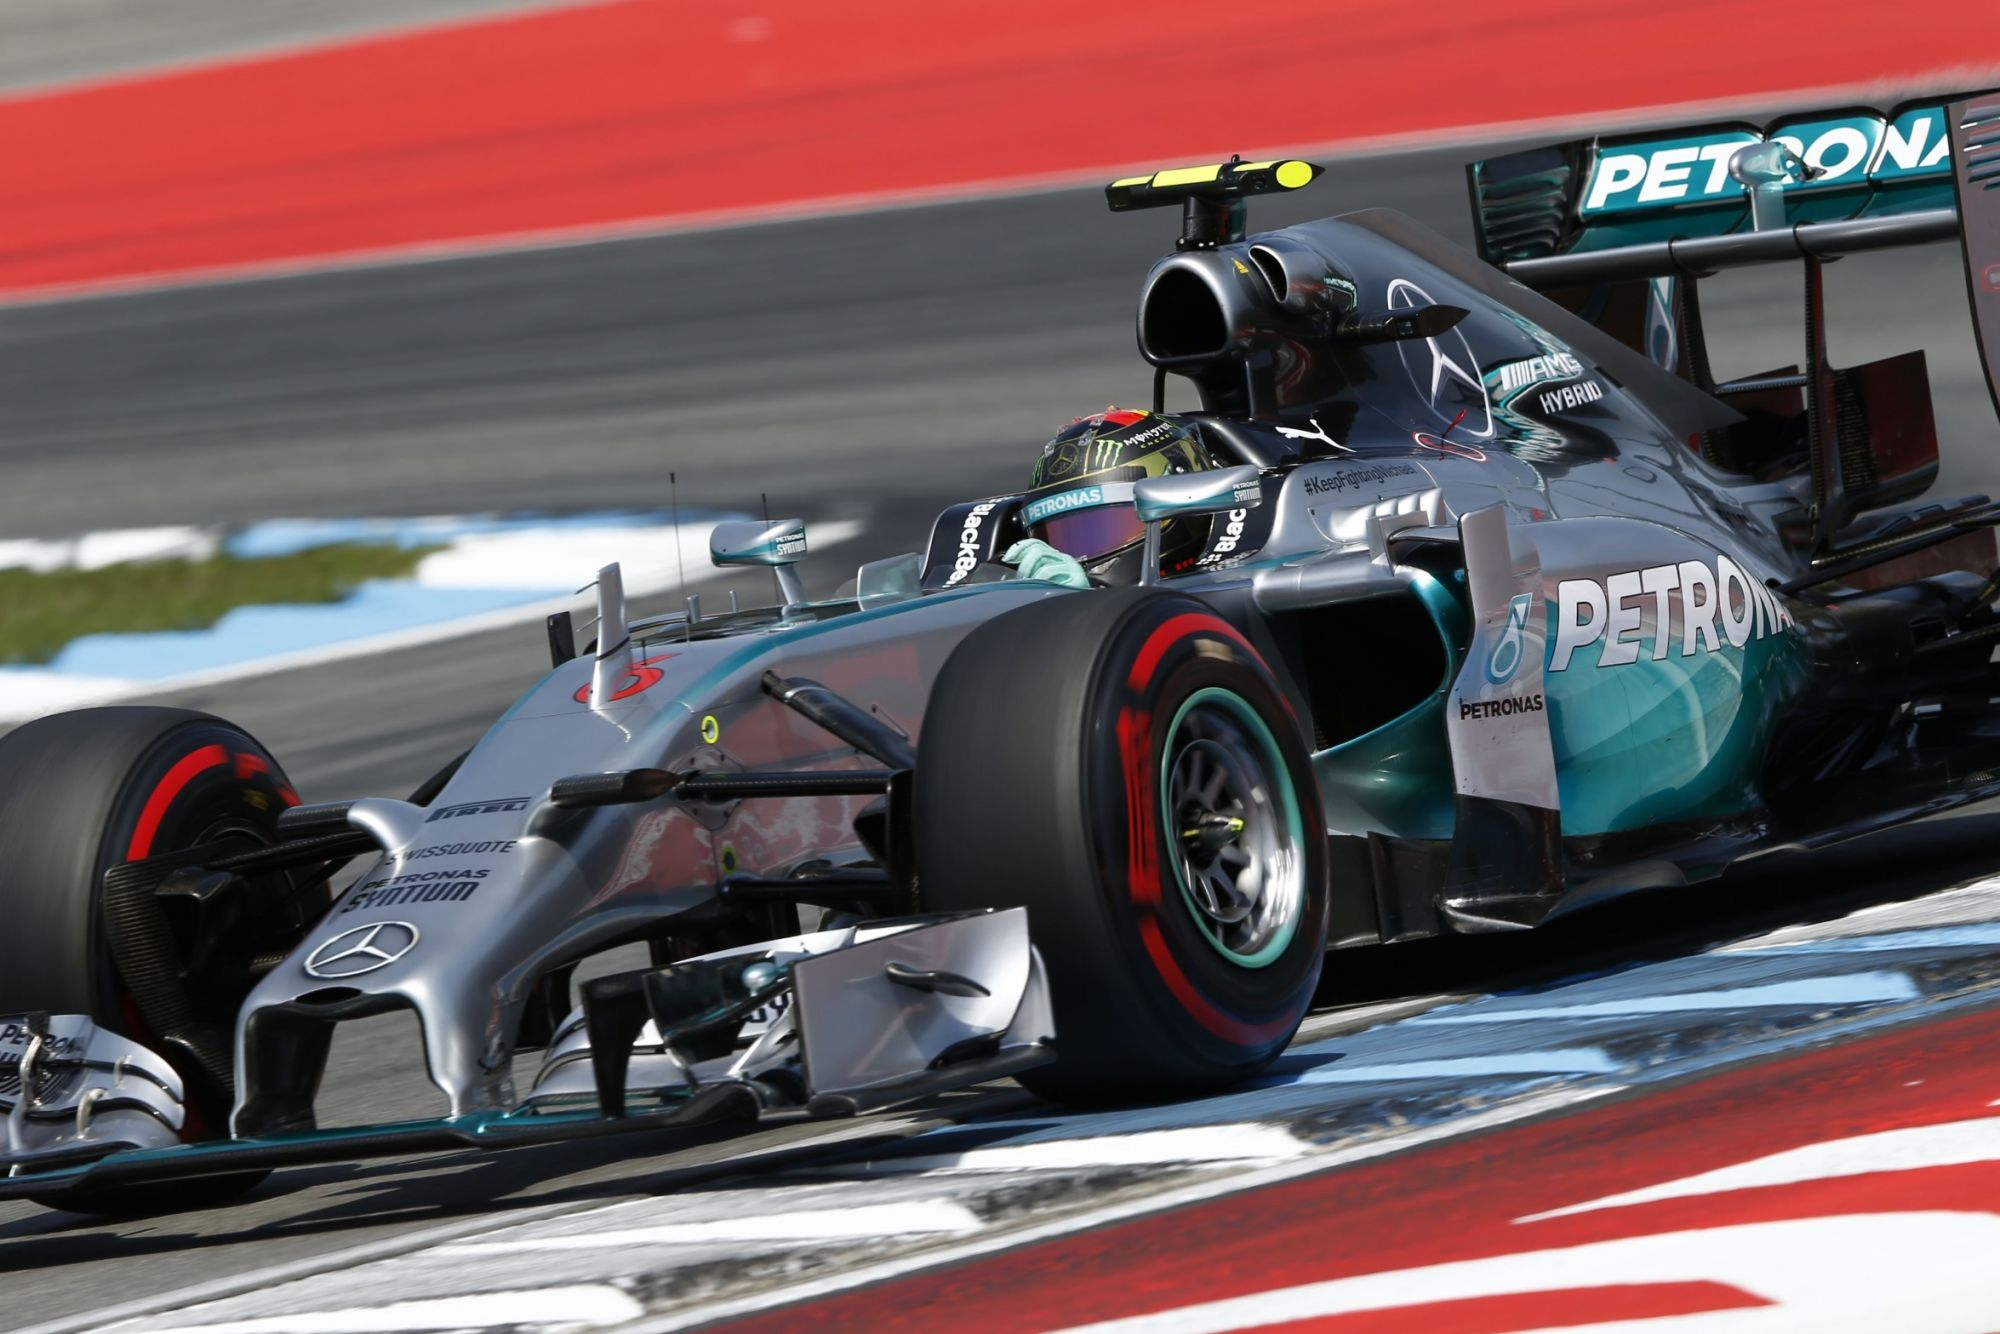 nico-rosberg-mercedes-w05-hybrid-german-gp-winner-hockenheim-f1-2014-foto-mercedes